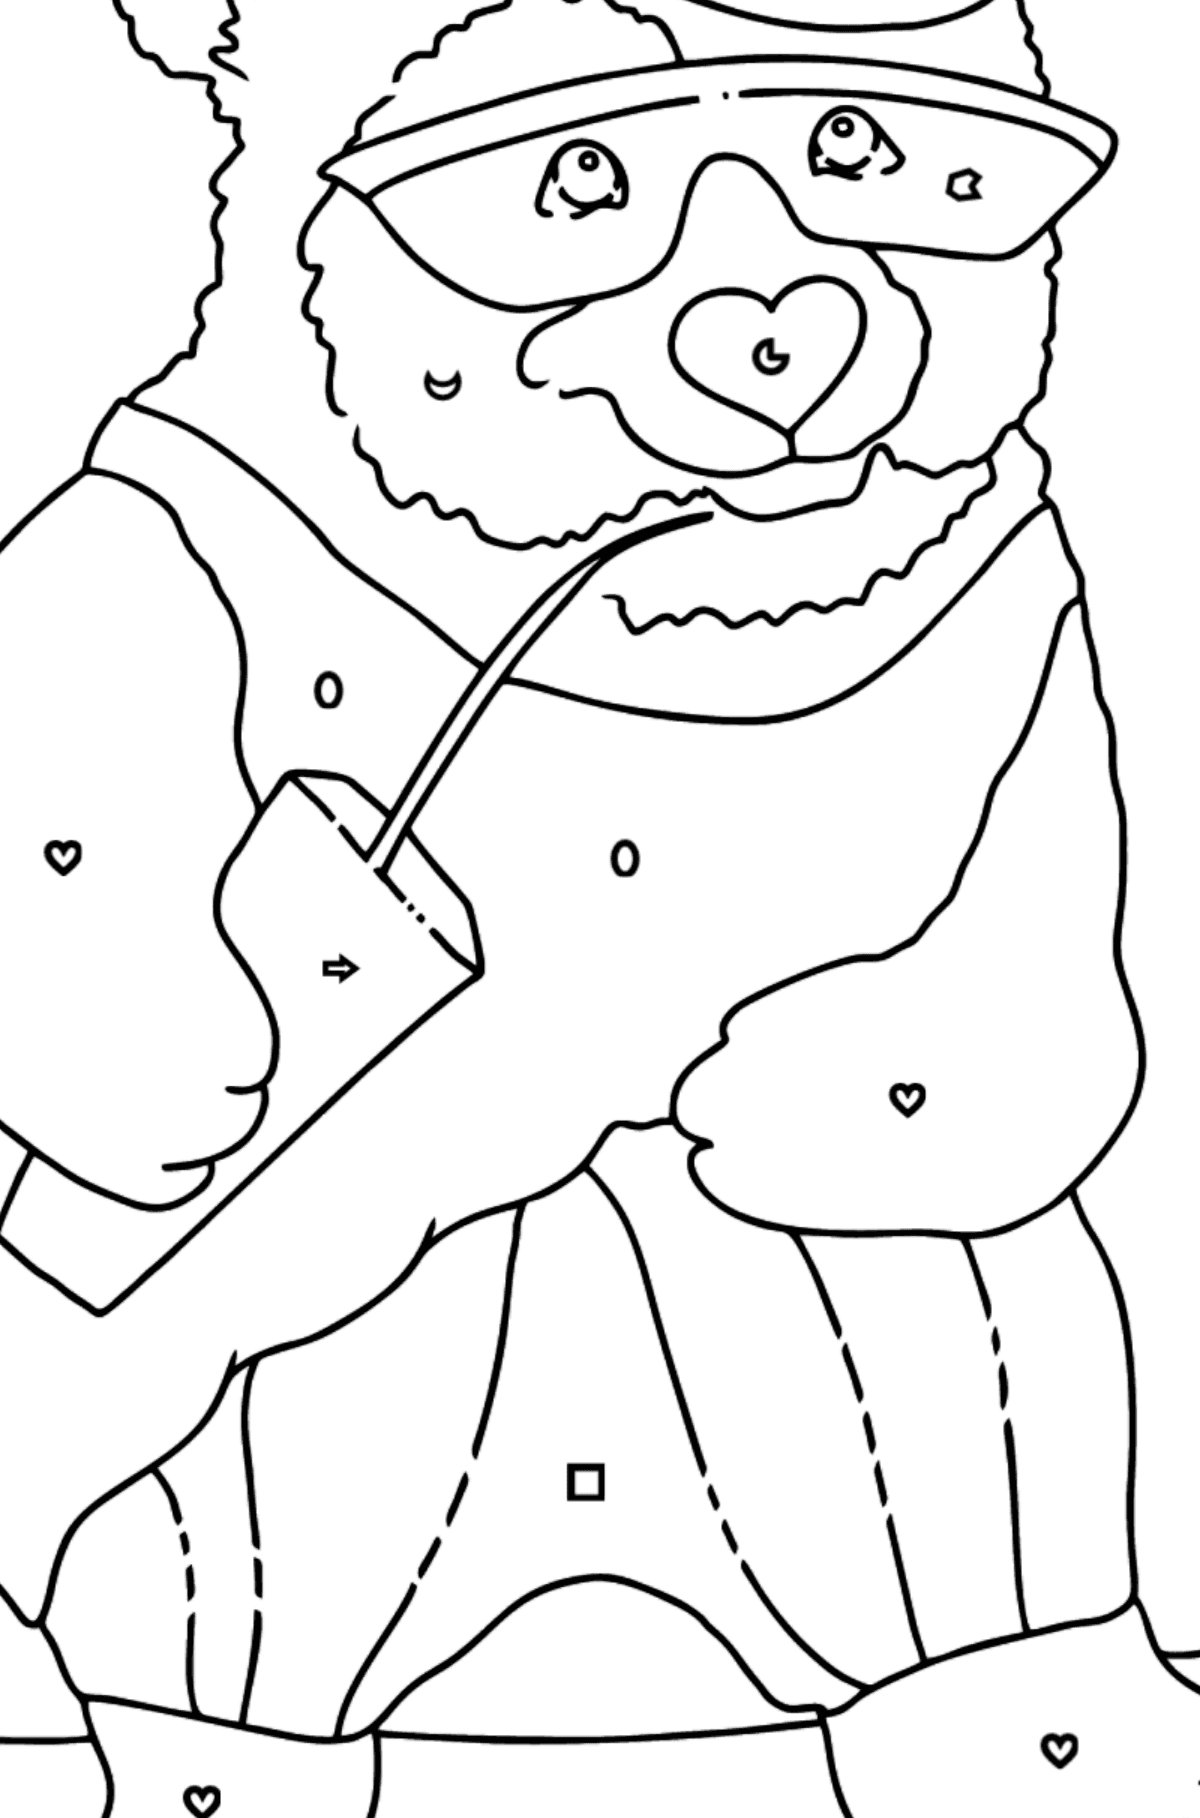 Coloring Page - A Panda on a Skateboard - Coloring by Geometric Shapes for Kids